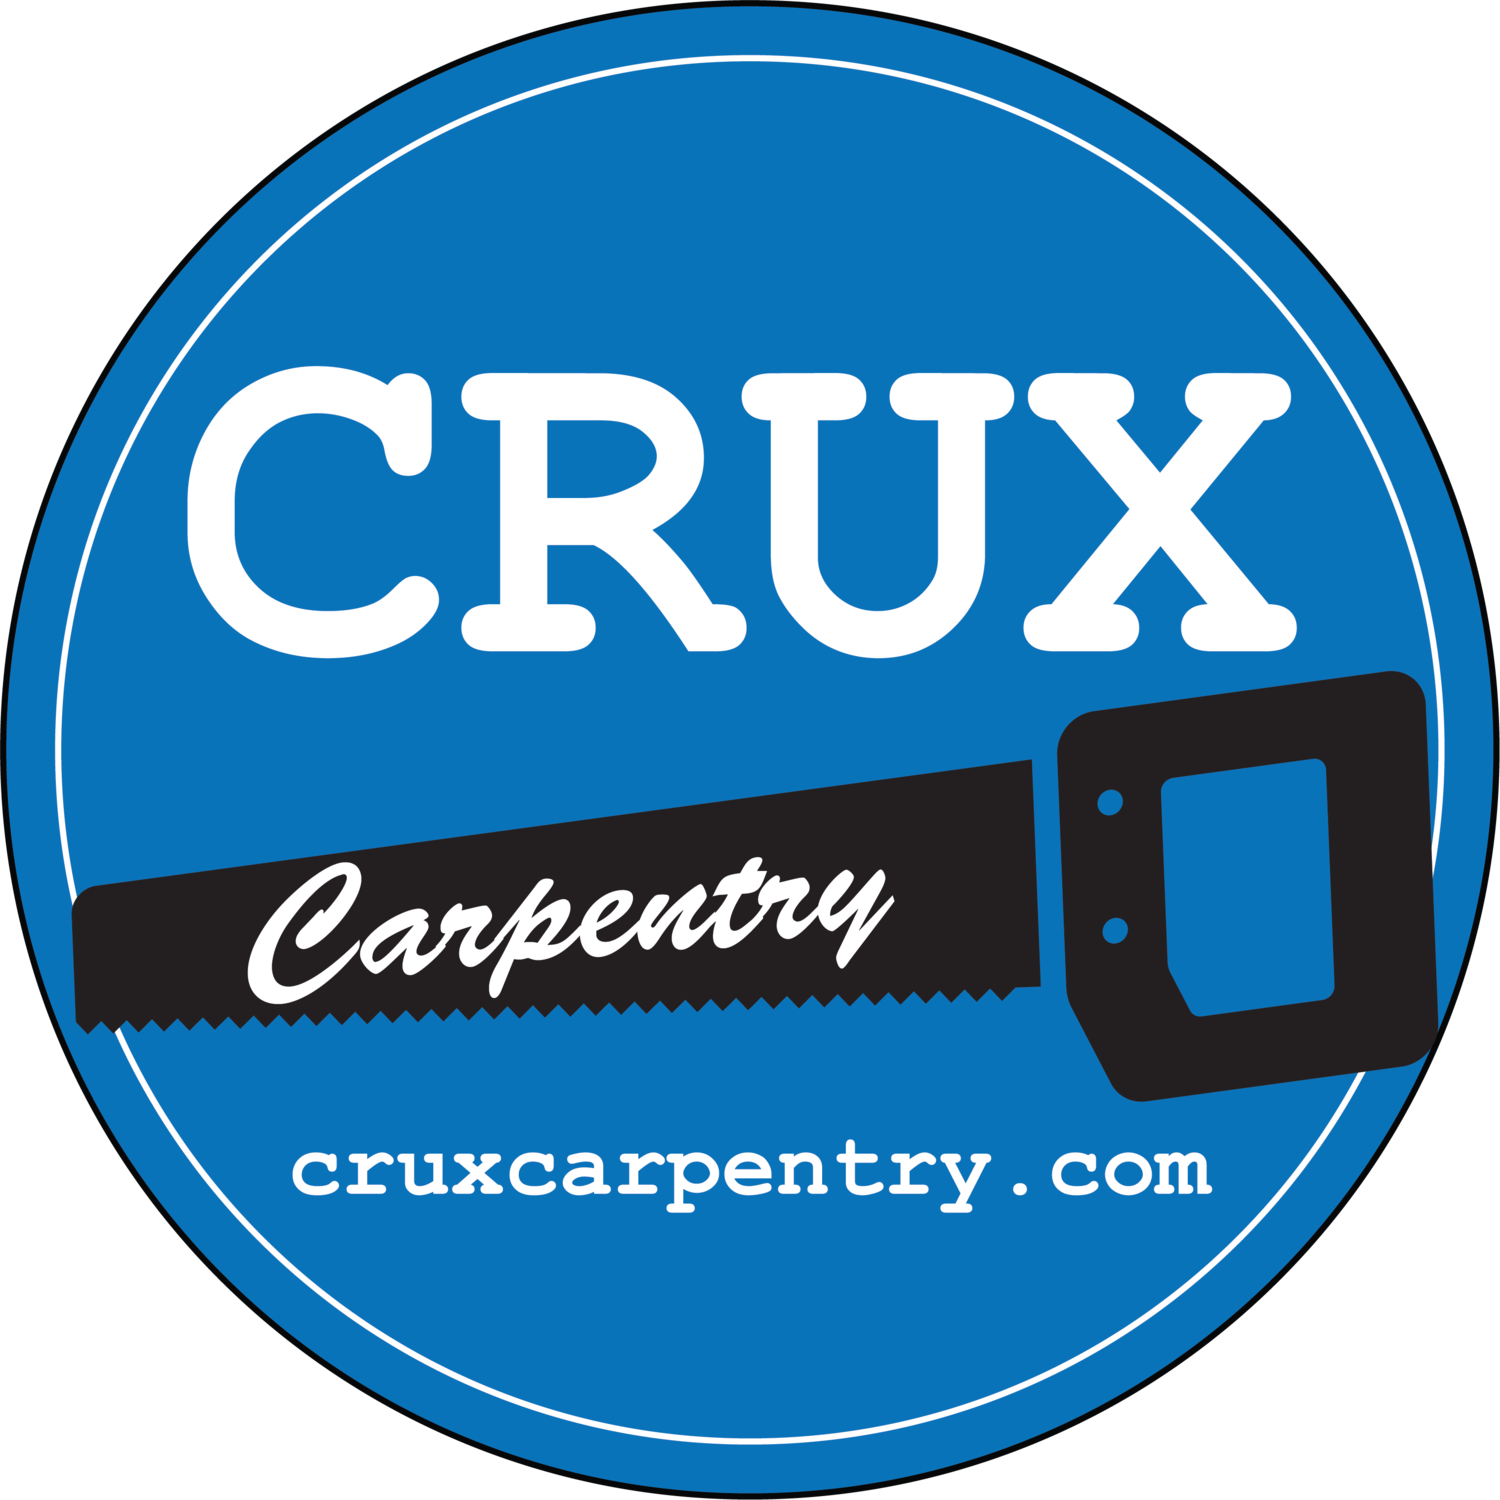 Crux Carpentry